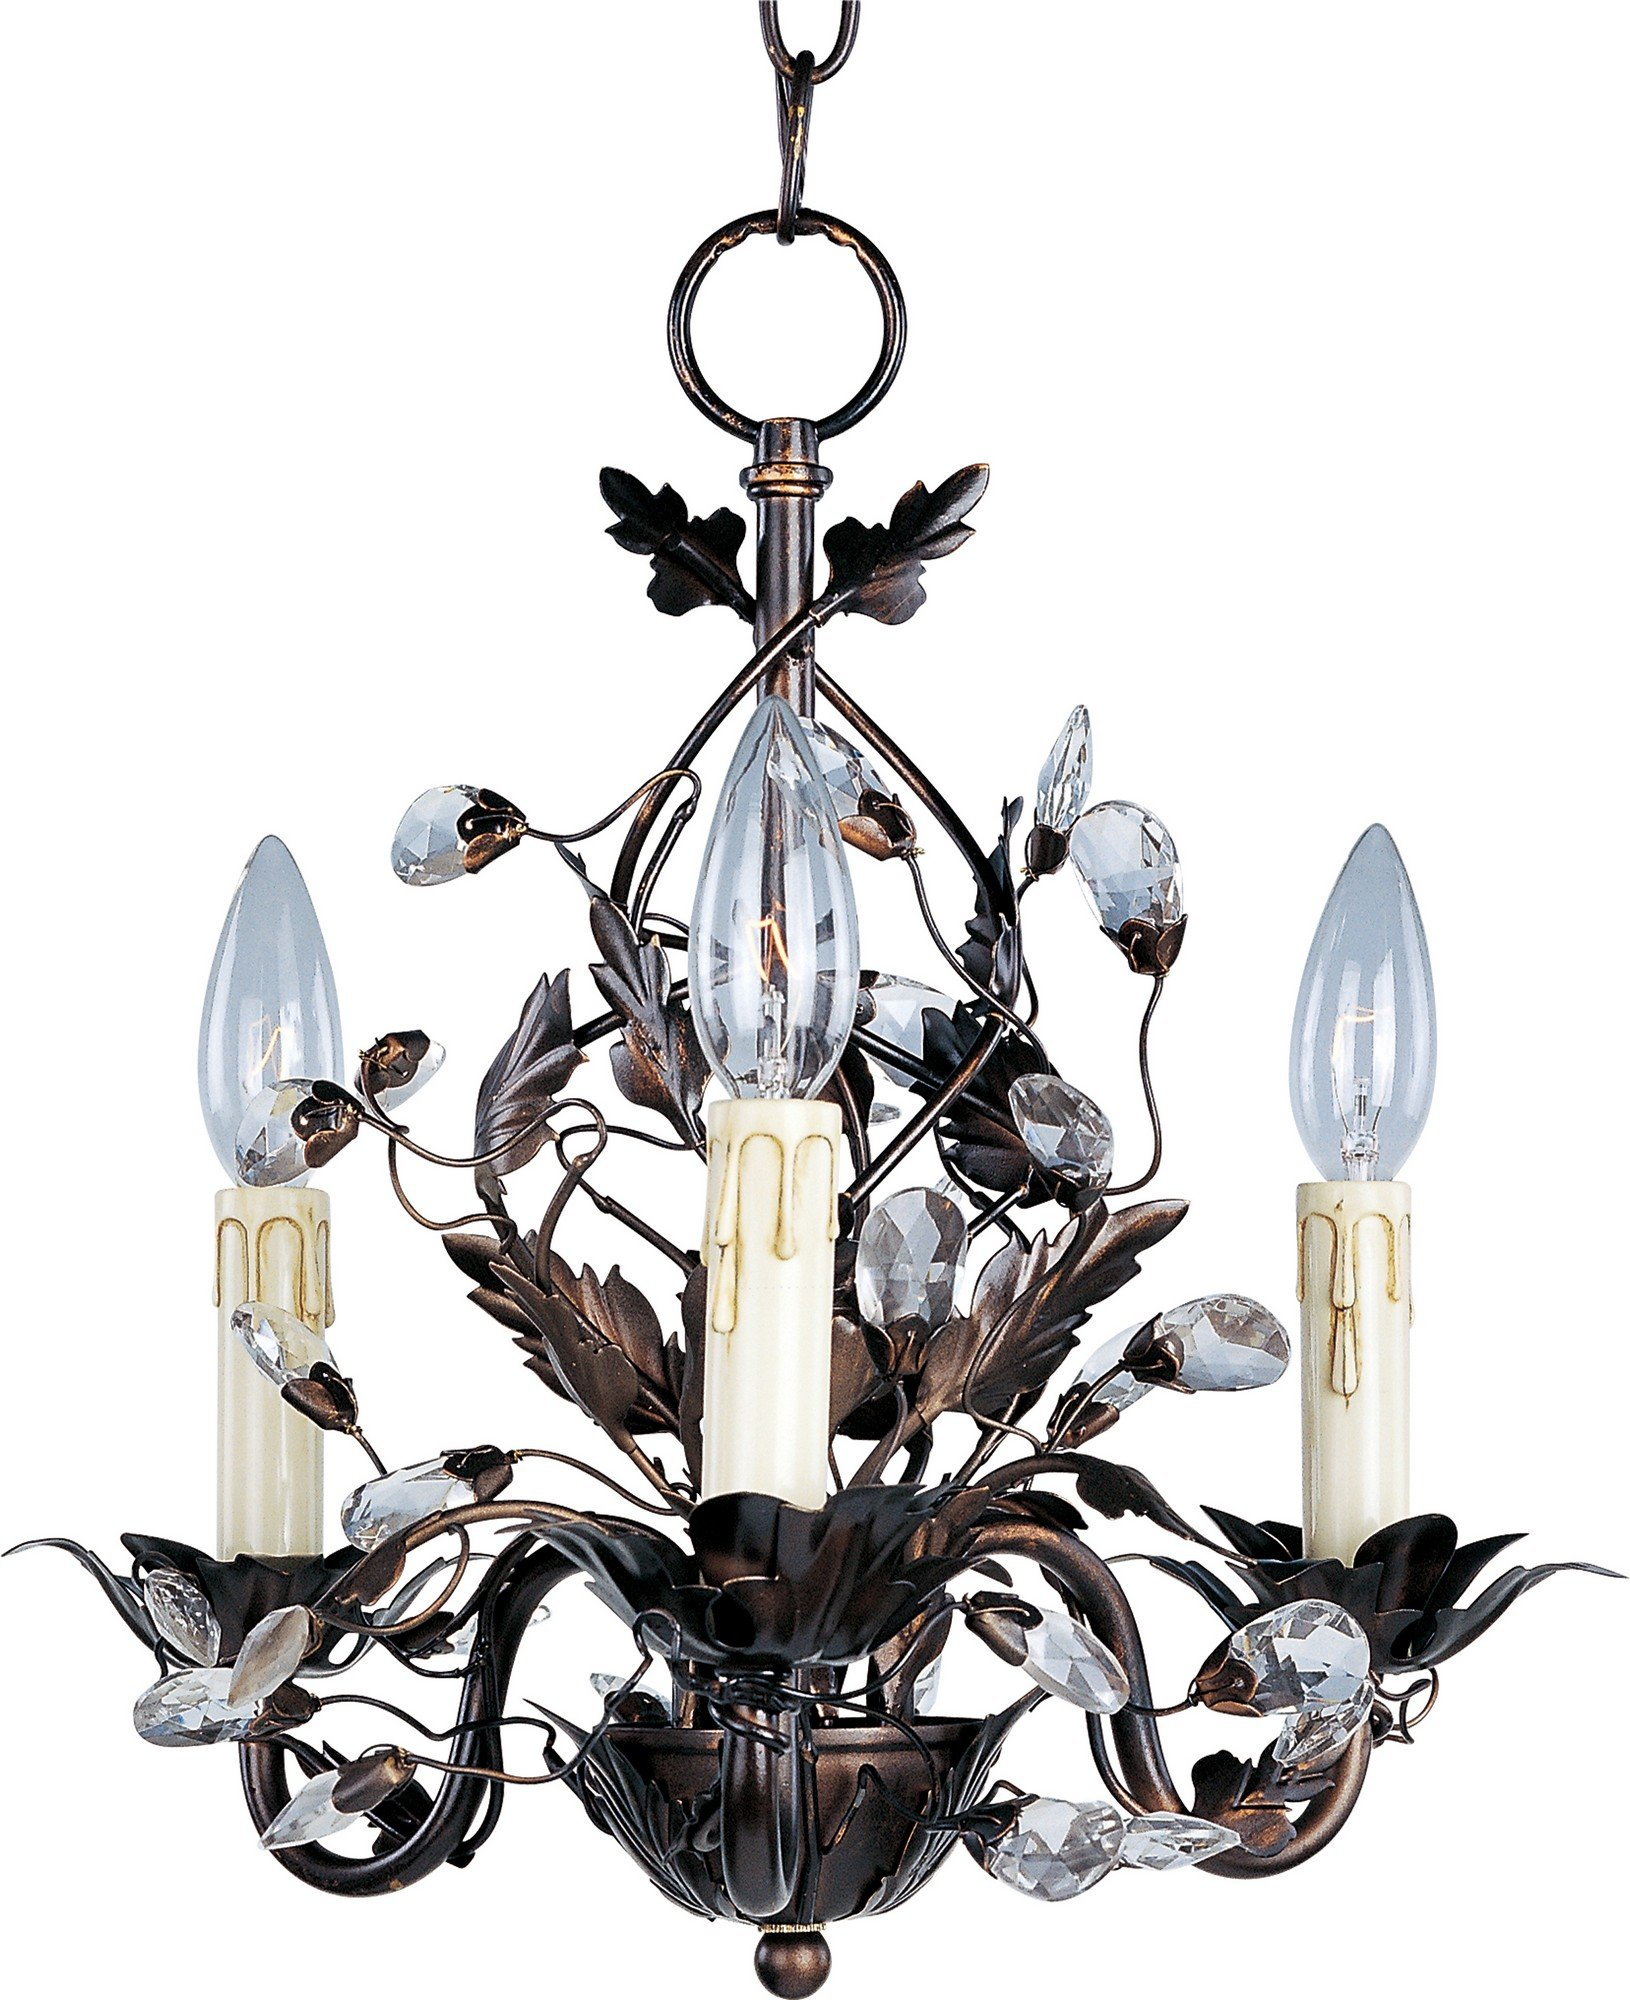 Maxim 2855OI Elegante 3-Light Chandelier Single-Tier Chandelier, Oil Rubbed Bronze Finish, Glass, CA Incandescent Incandescent Bulb , 60W Max., Wet Safety Rating, Standard Dimmable, Glass Shade Material, 672 Rated Lumens by Maxim Lighting (Image #1)